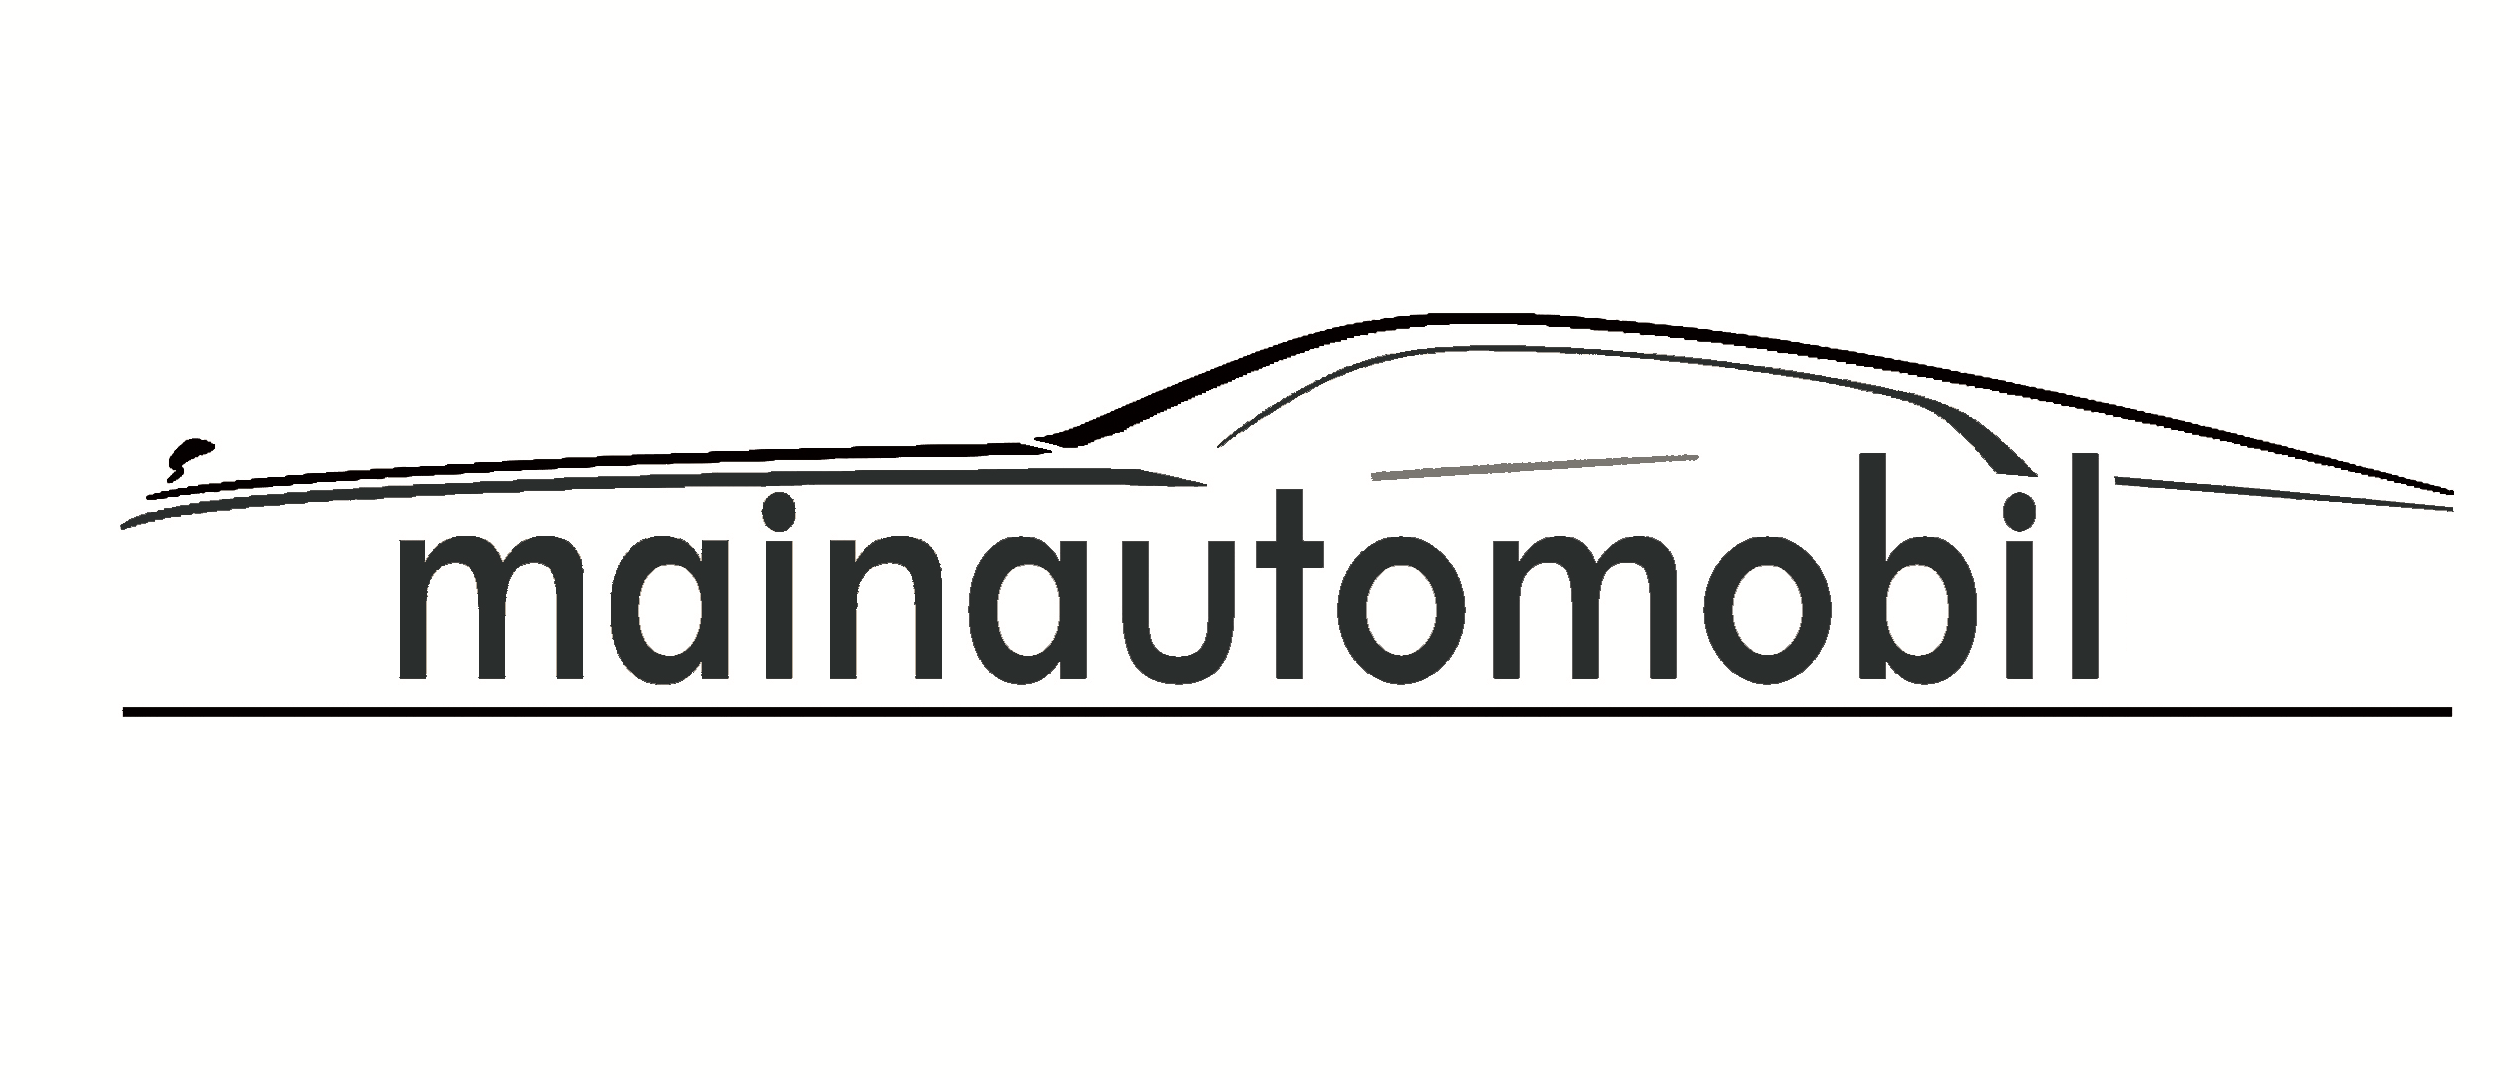 Mainautomobil GmbH & Co. KG